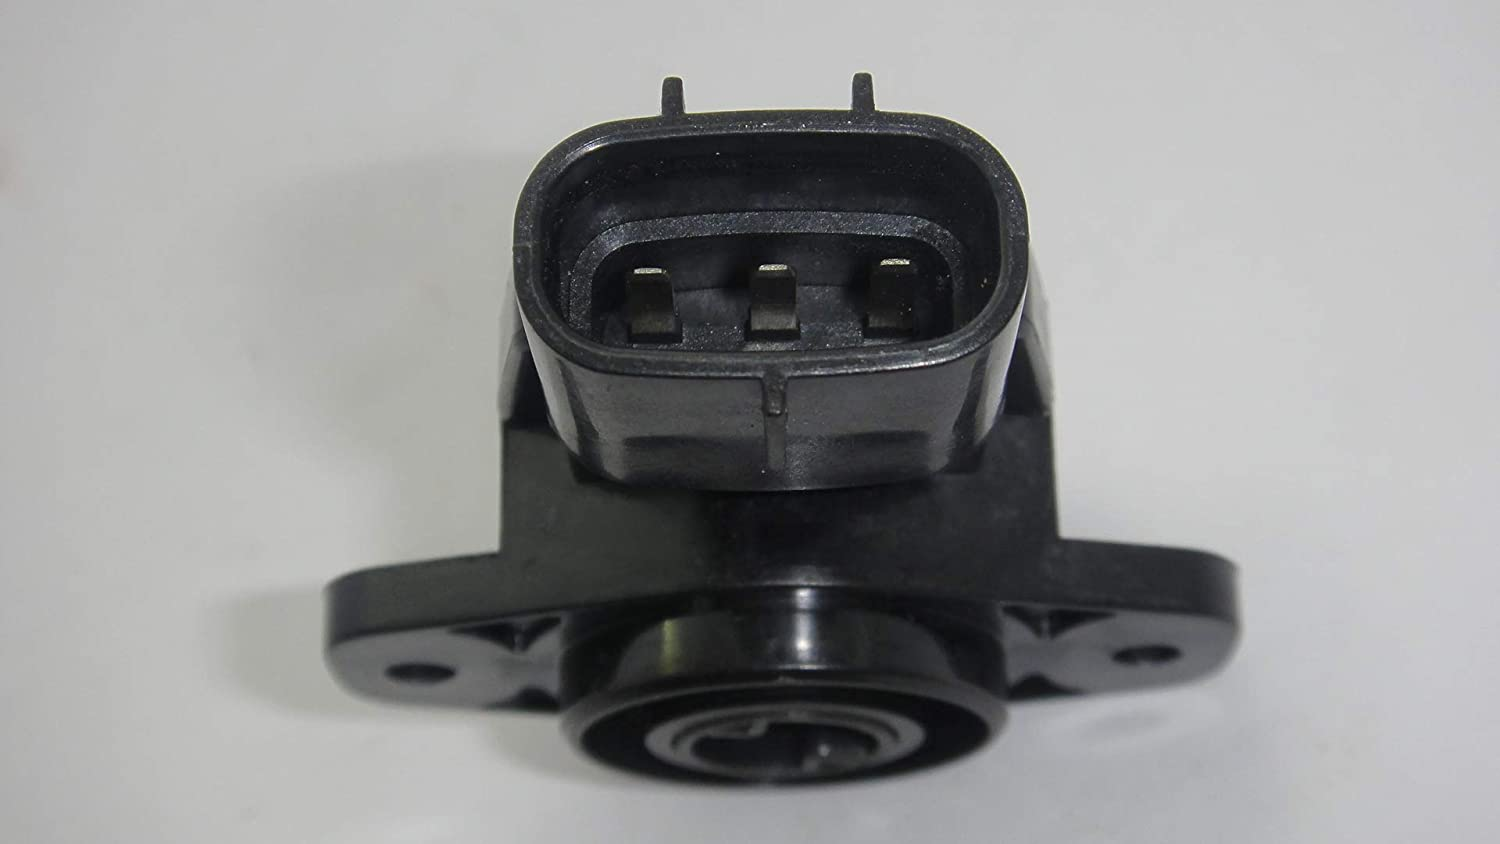 Throttle Position Sensor TPS 13420-86G01 1342086G01 13420-86G00 13420-77G01 13420-77G00 1342086G00 1342077G01 1342077G00